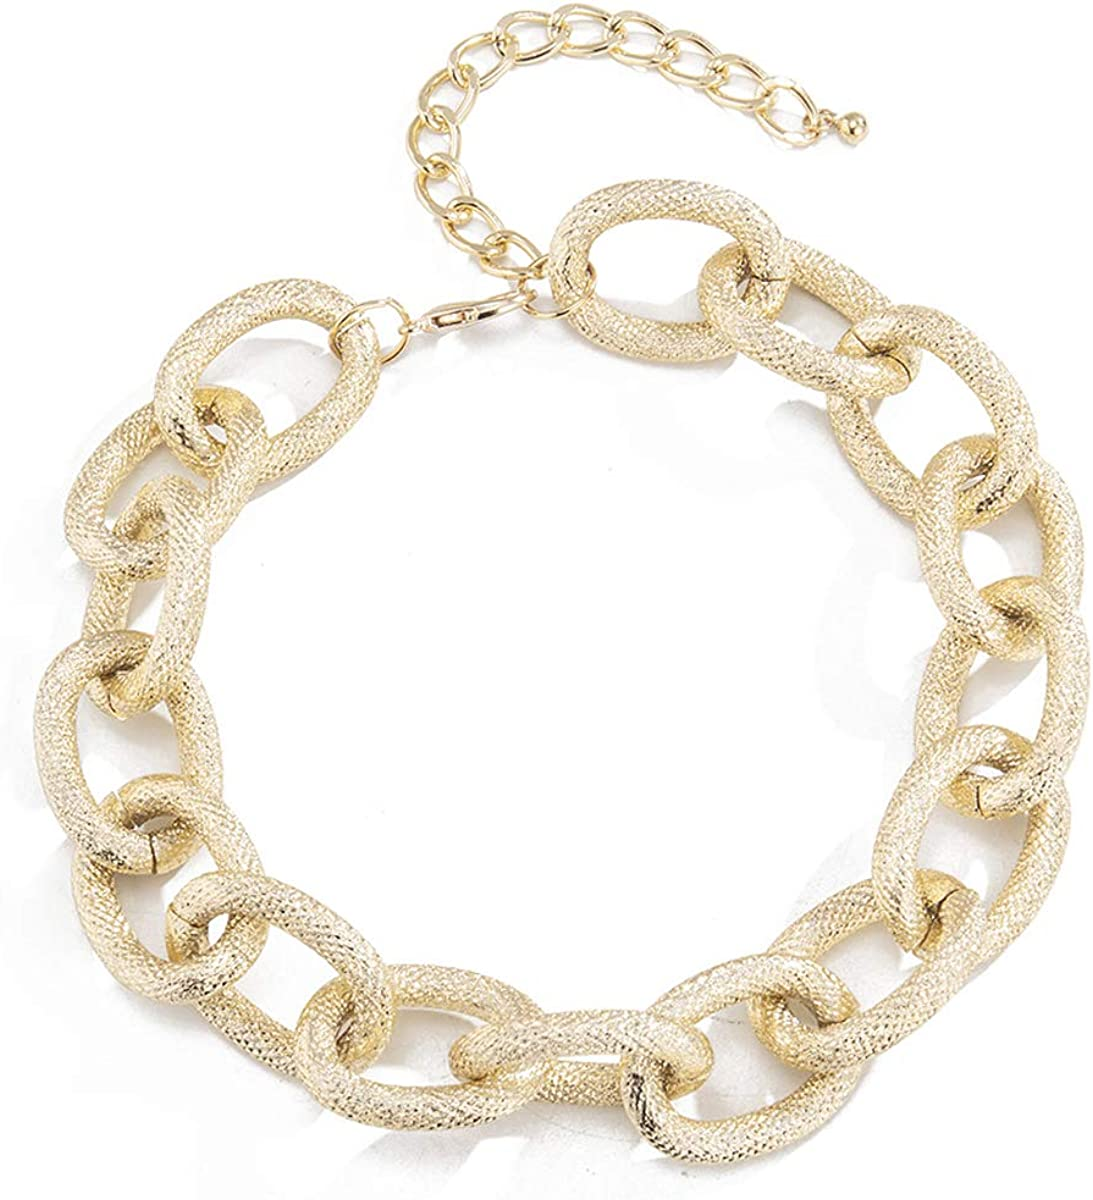 DOHAOOE Statement Chunky Chain Link Choker Adjustable Metal Necklace